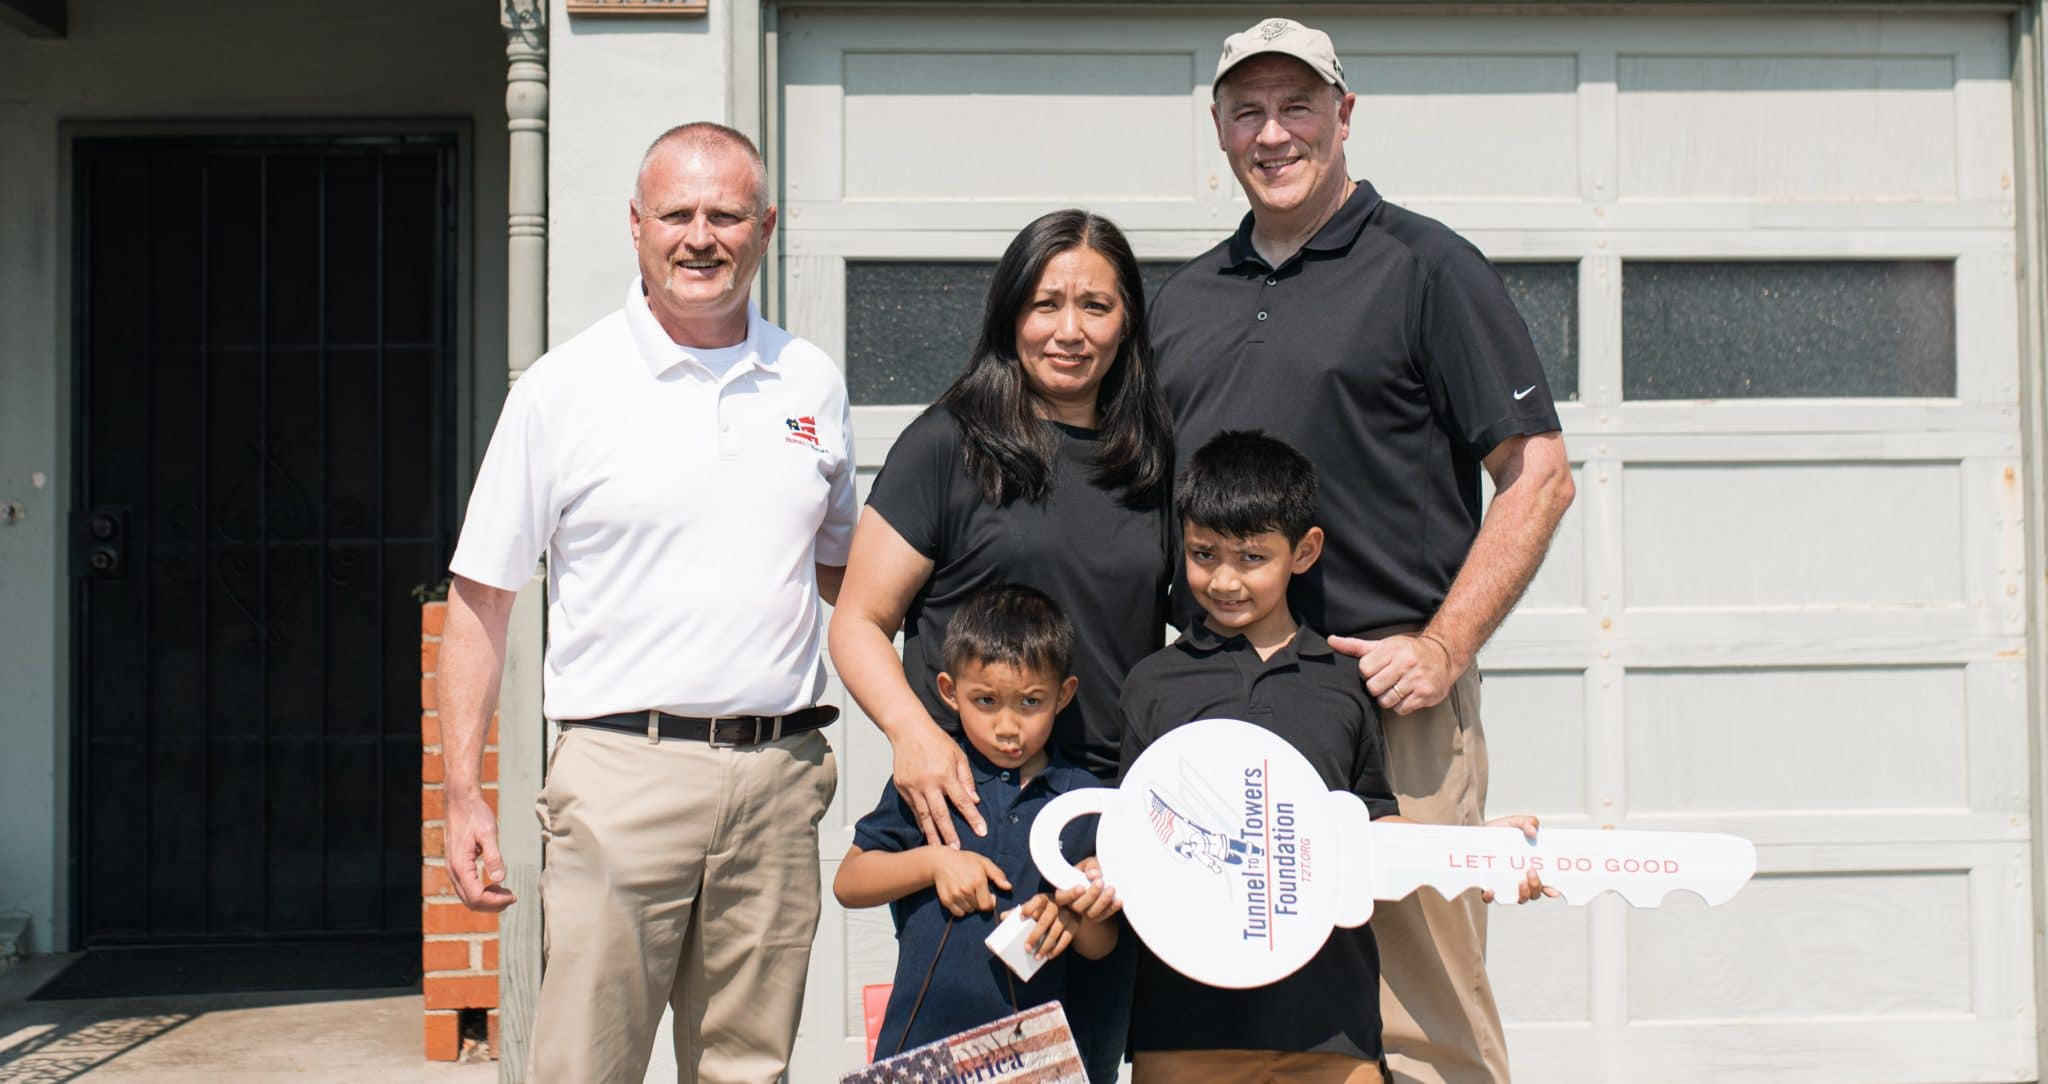 Representatives from Homes for Heroes Foundation and Tunnel to Towers stand with Patricia Cortez and her two sons in front of their San Francisco home